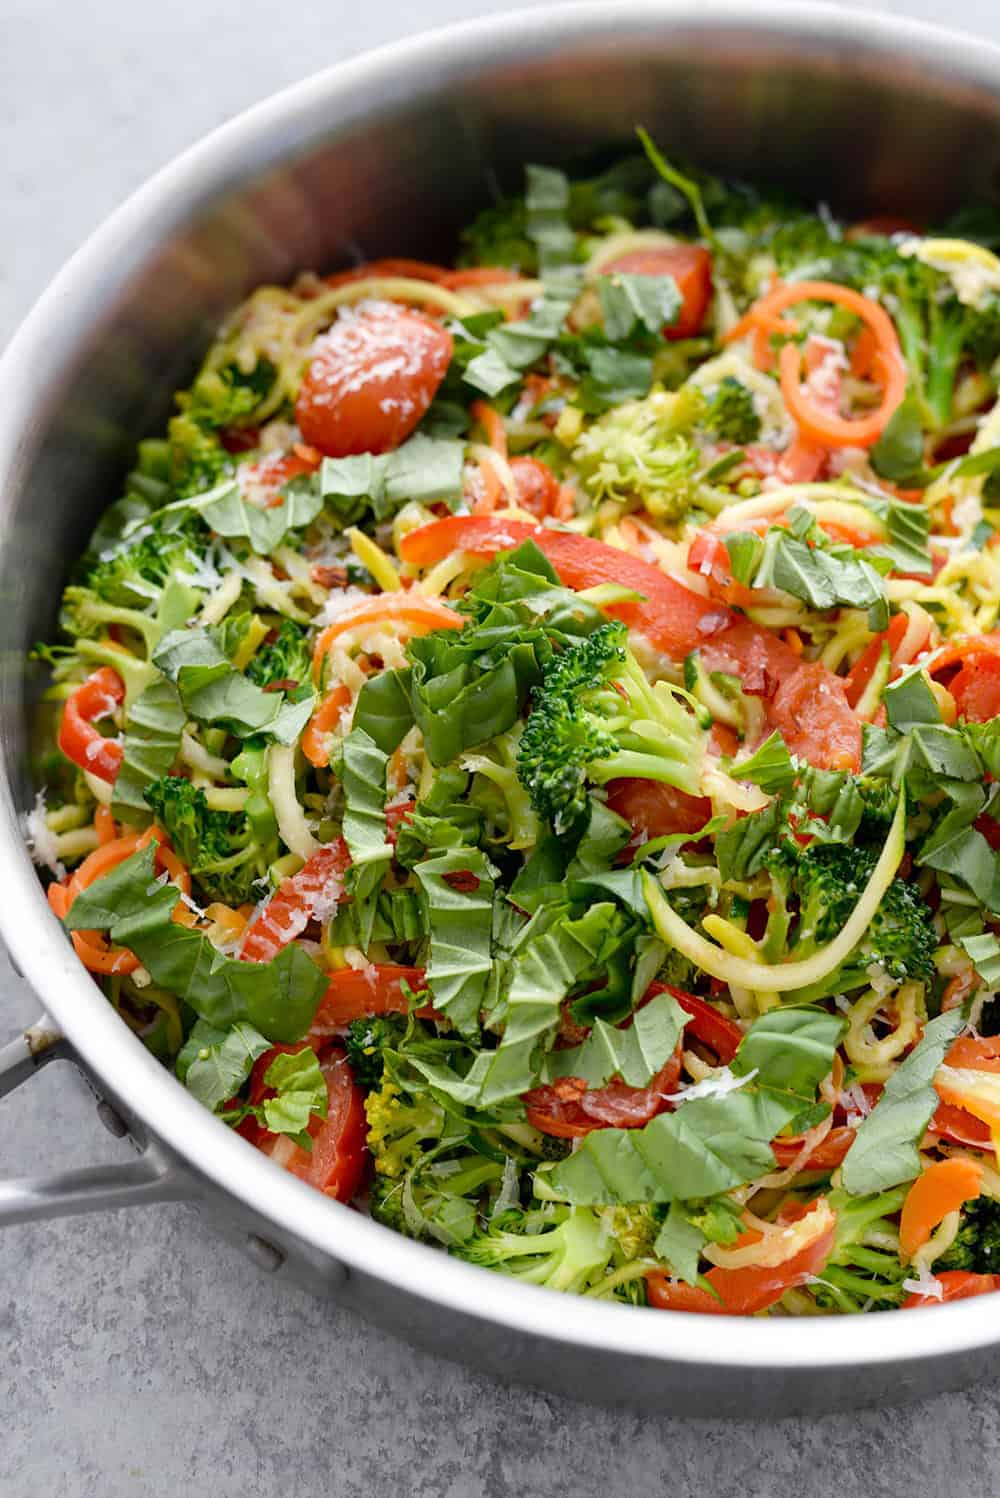 Skillet of zucchini zoodles with vegetables and herbs